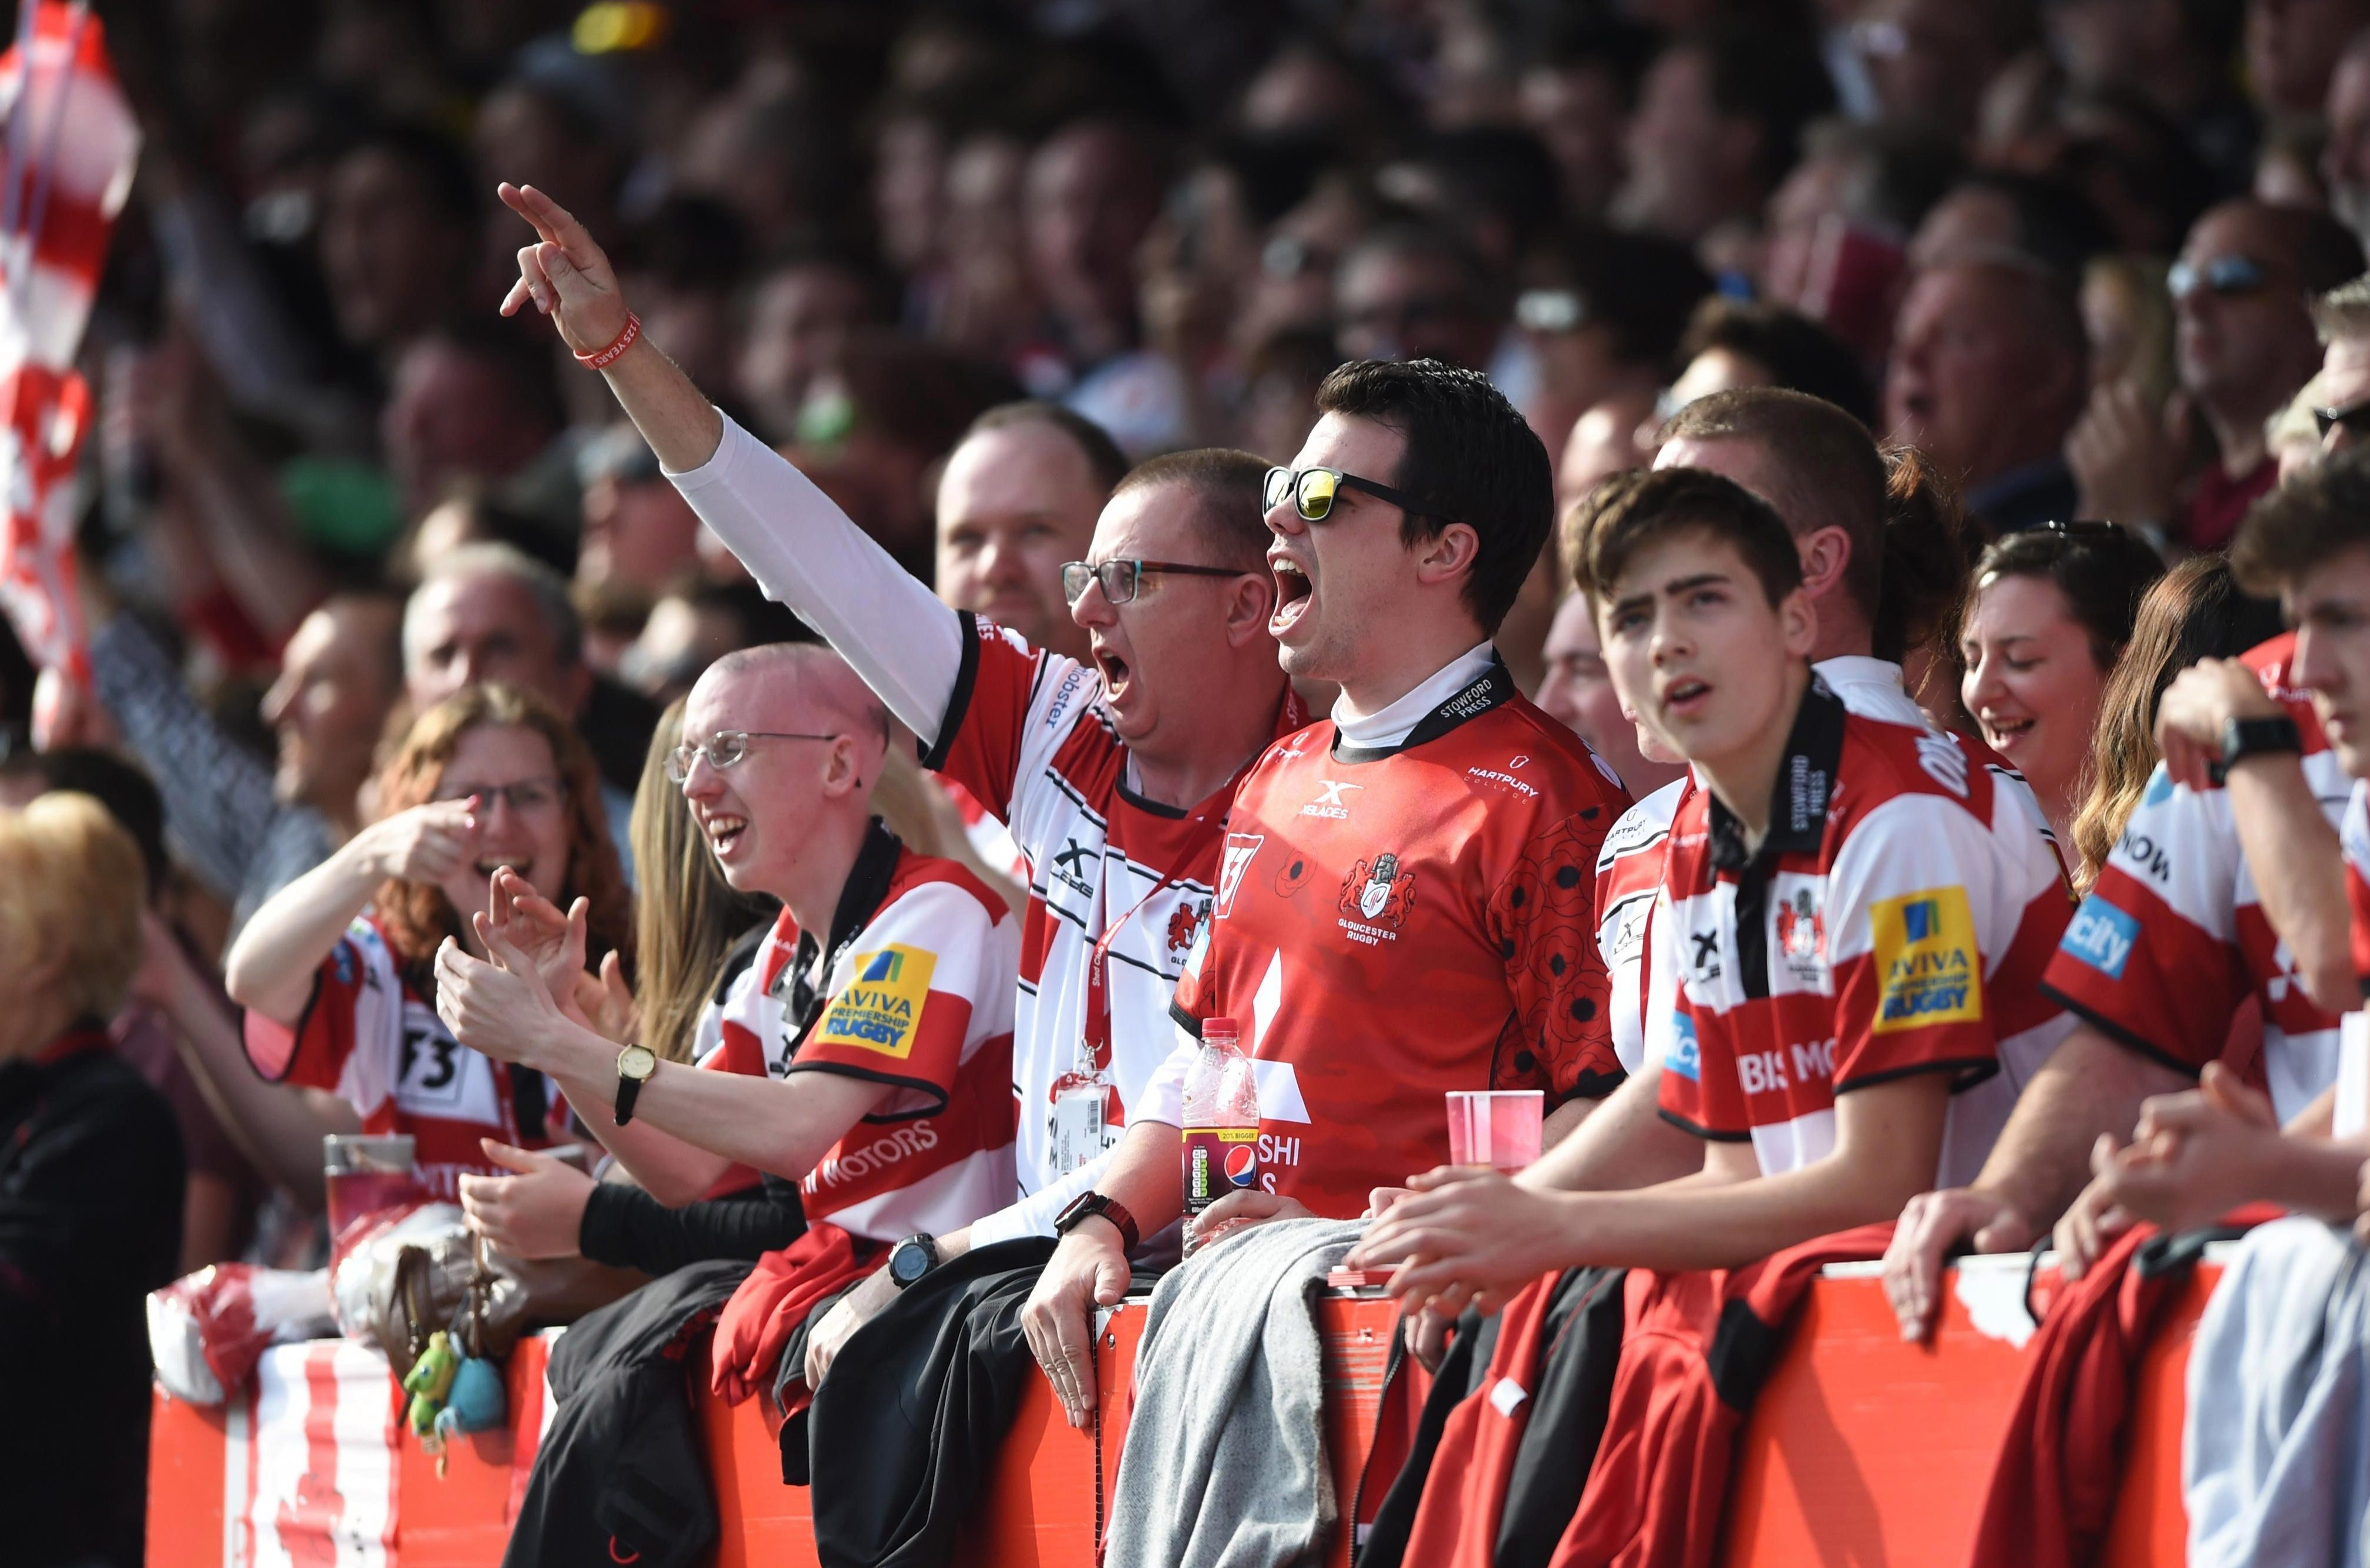 Gloucester fans will be delighted to see their team challenging on European and domestic fronts this season